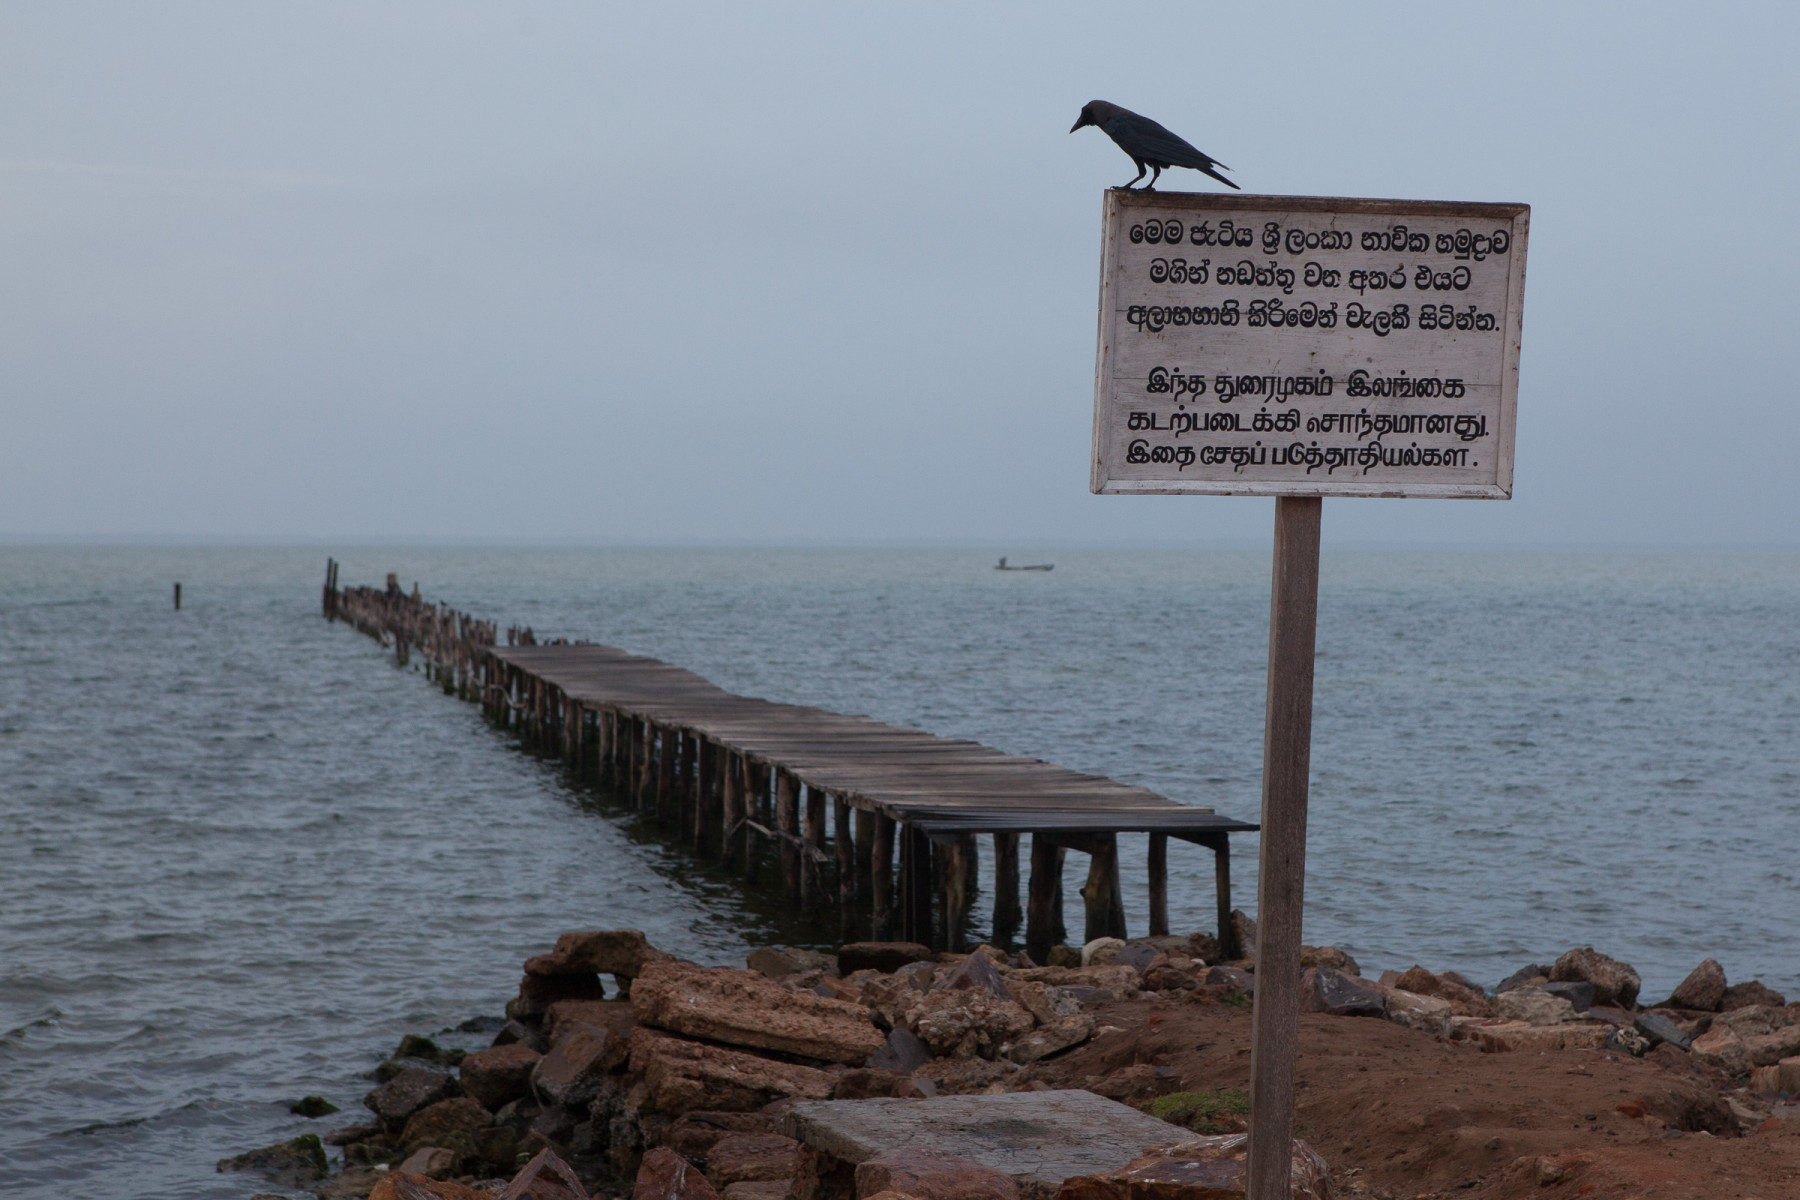 Half-decayed pier in Puttallam in Sri Lanka.